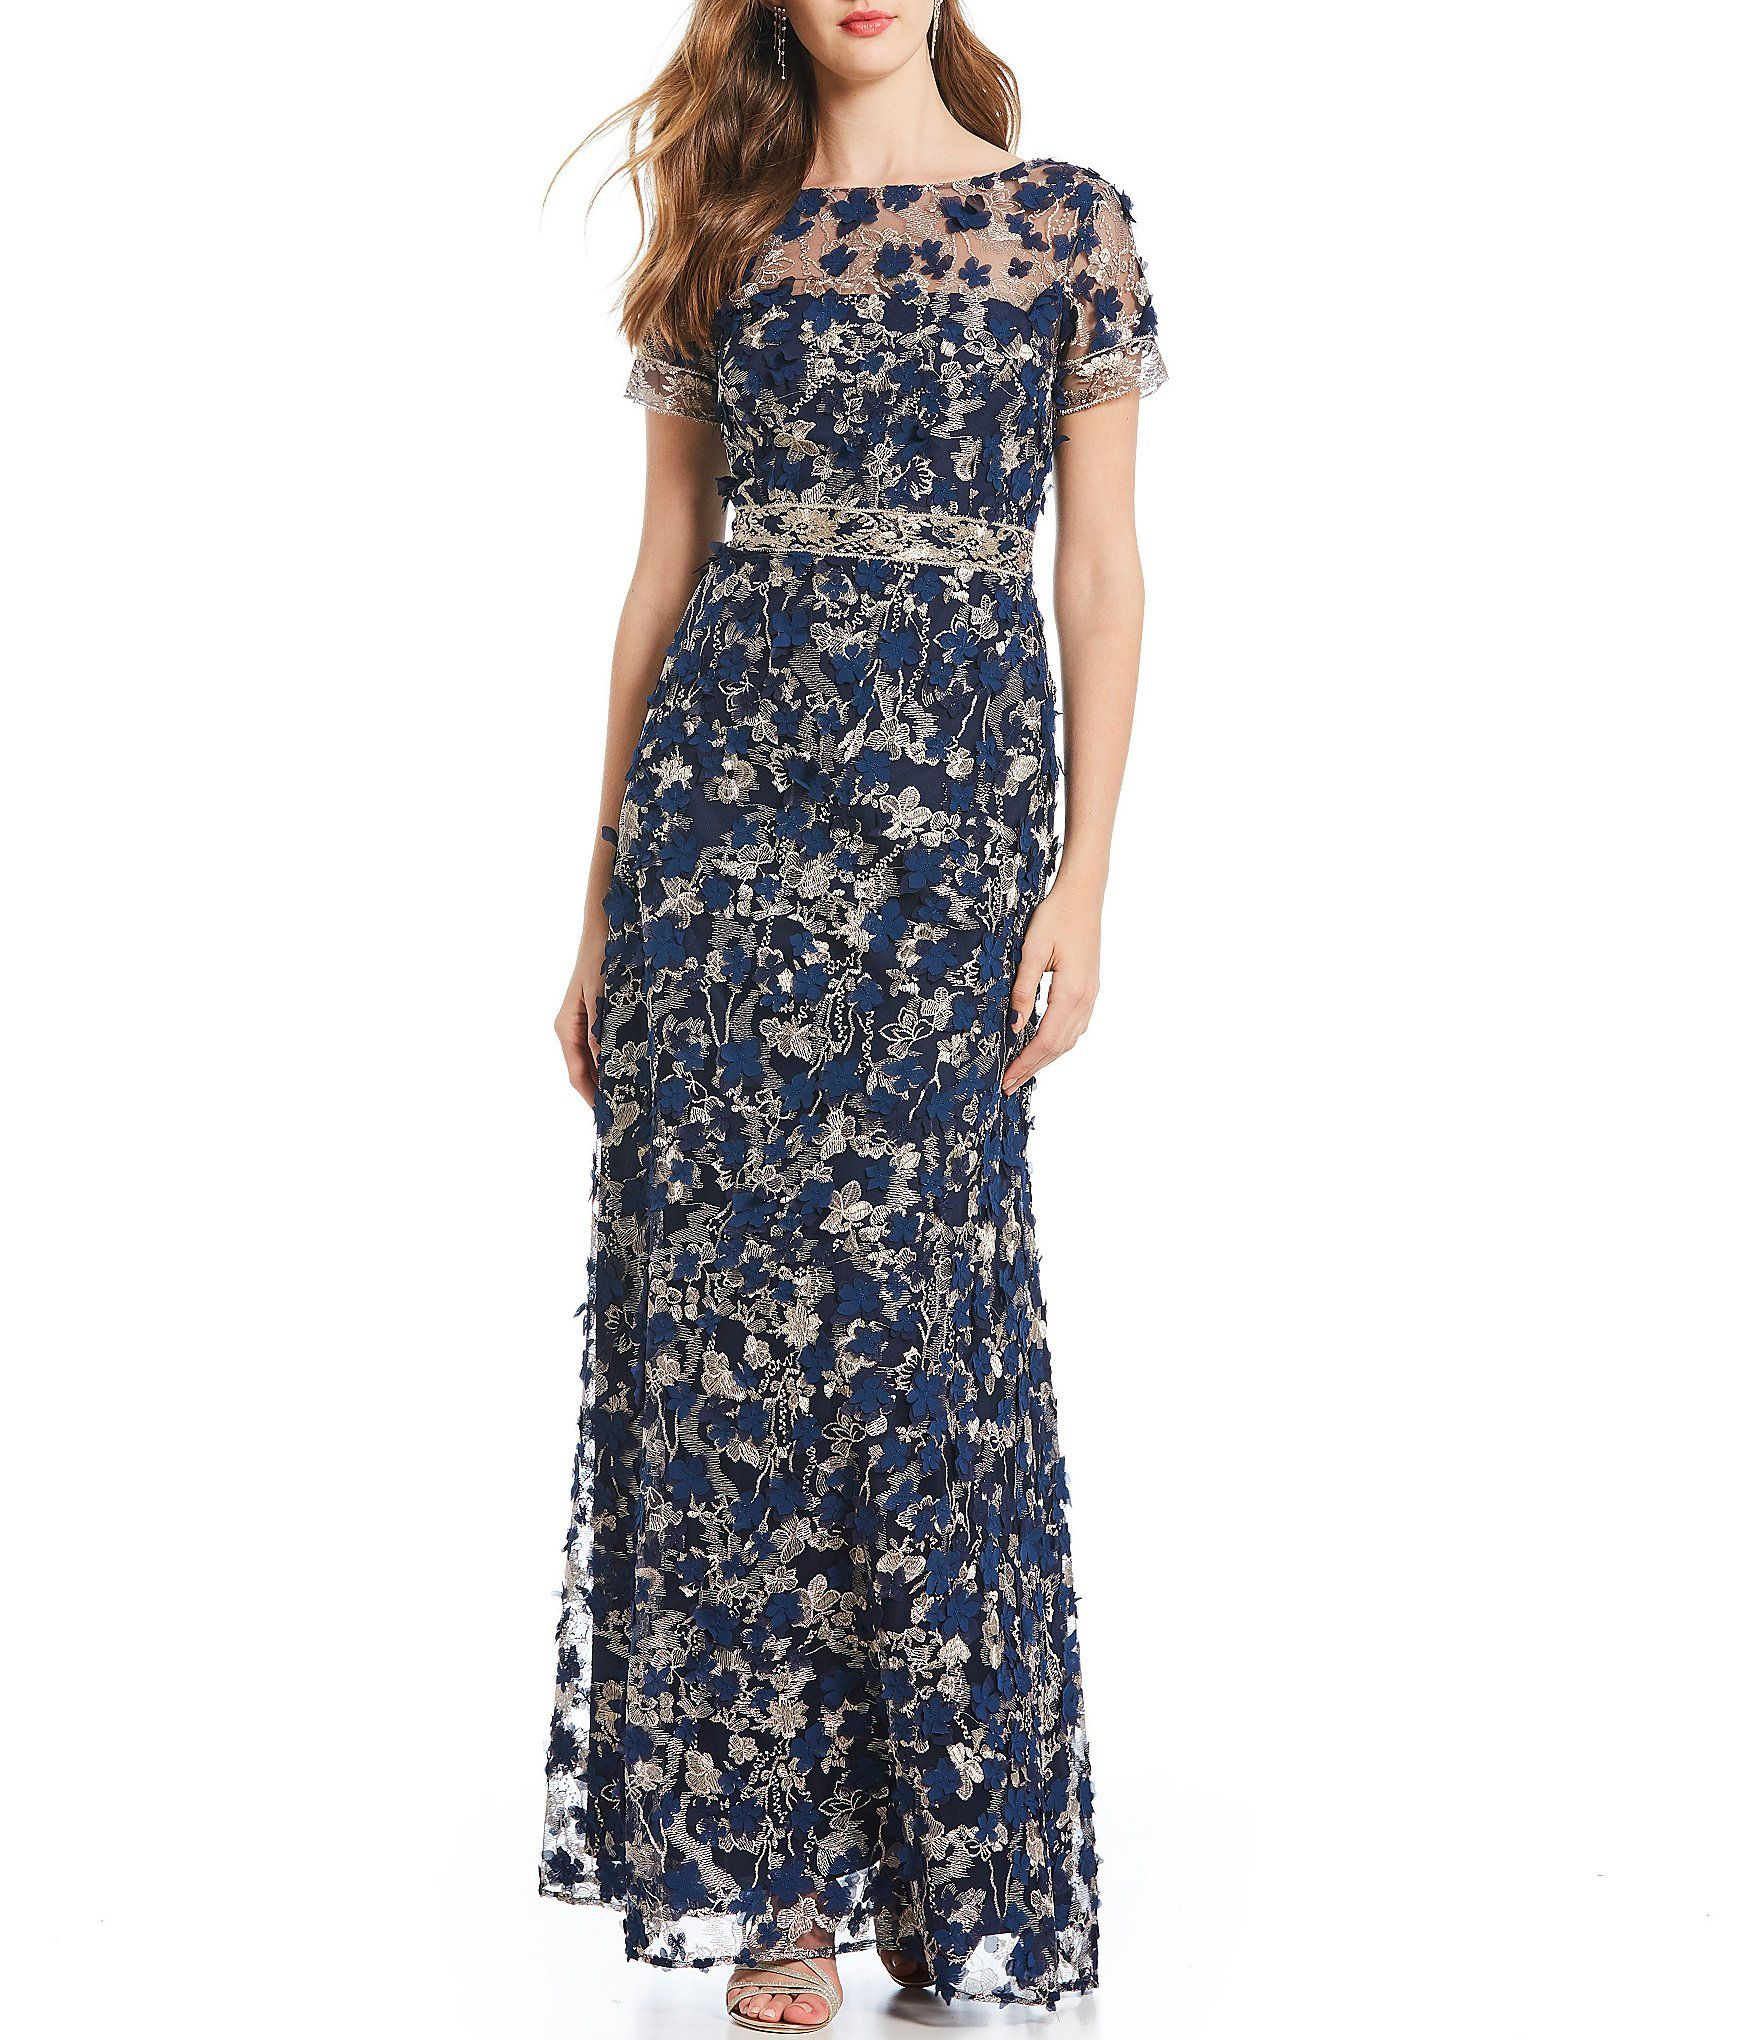 9ae7bc3d9fe Shop for David Meister 3-D Fleurette Embroidered Gown at Dillards.com.  Visit Dillards.com to find clothing